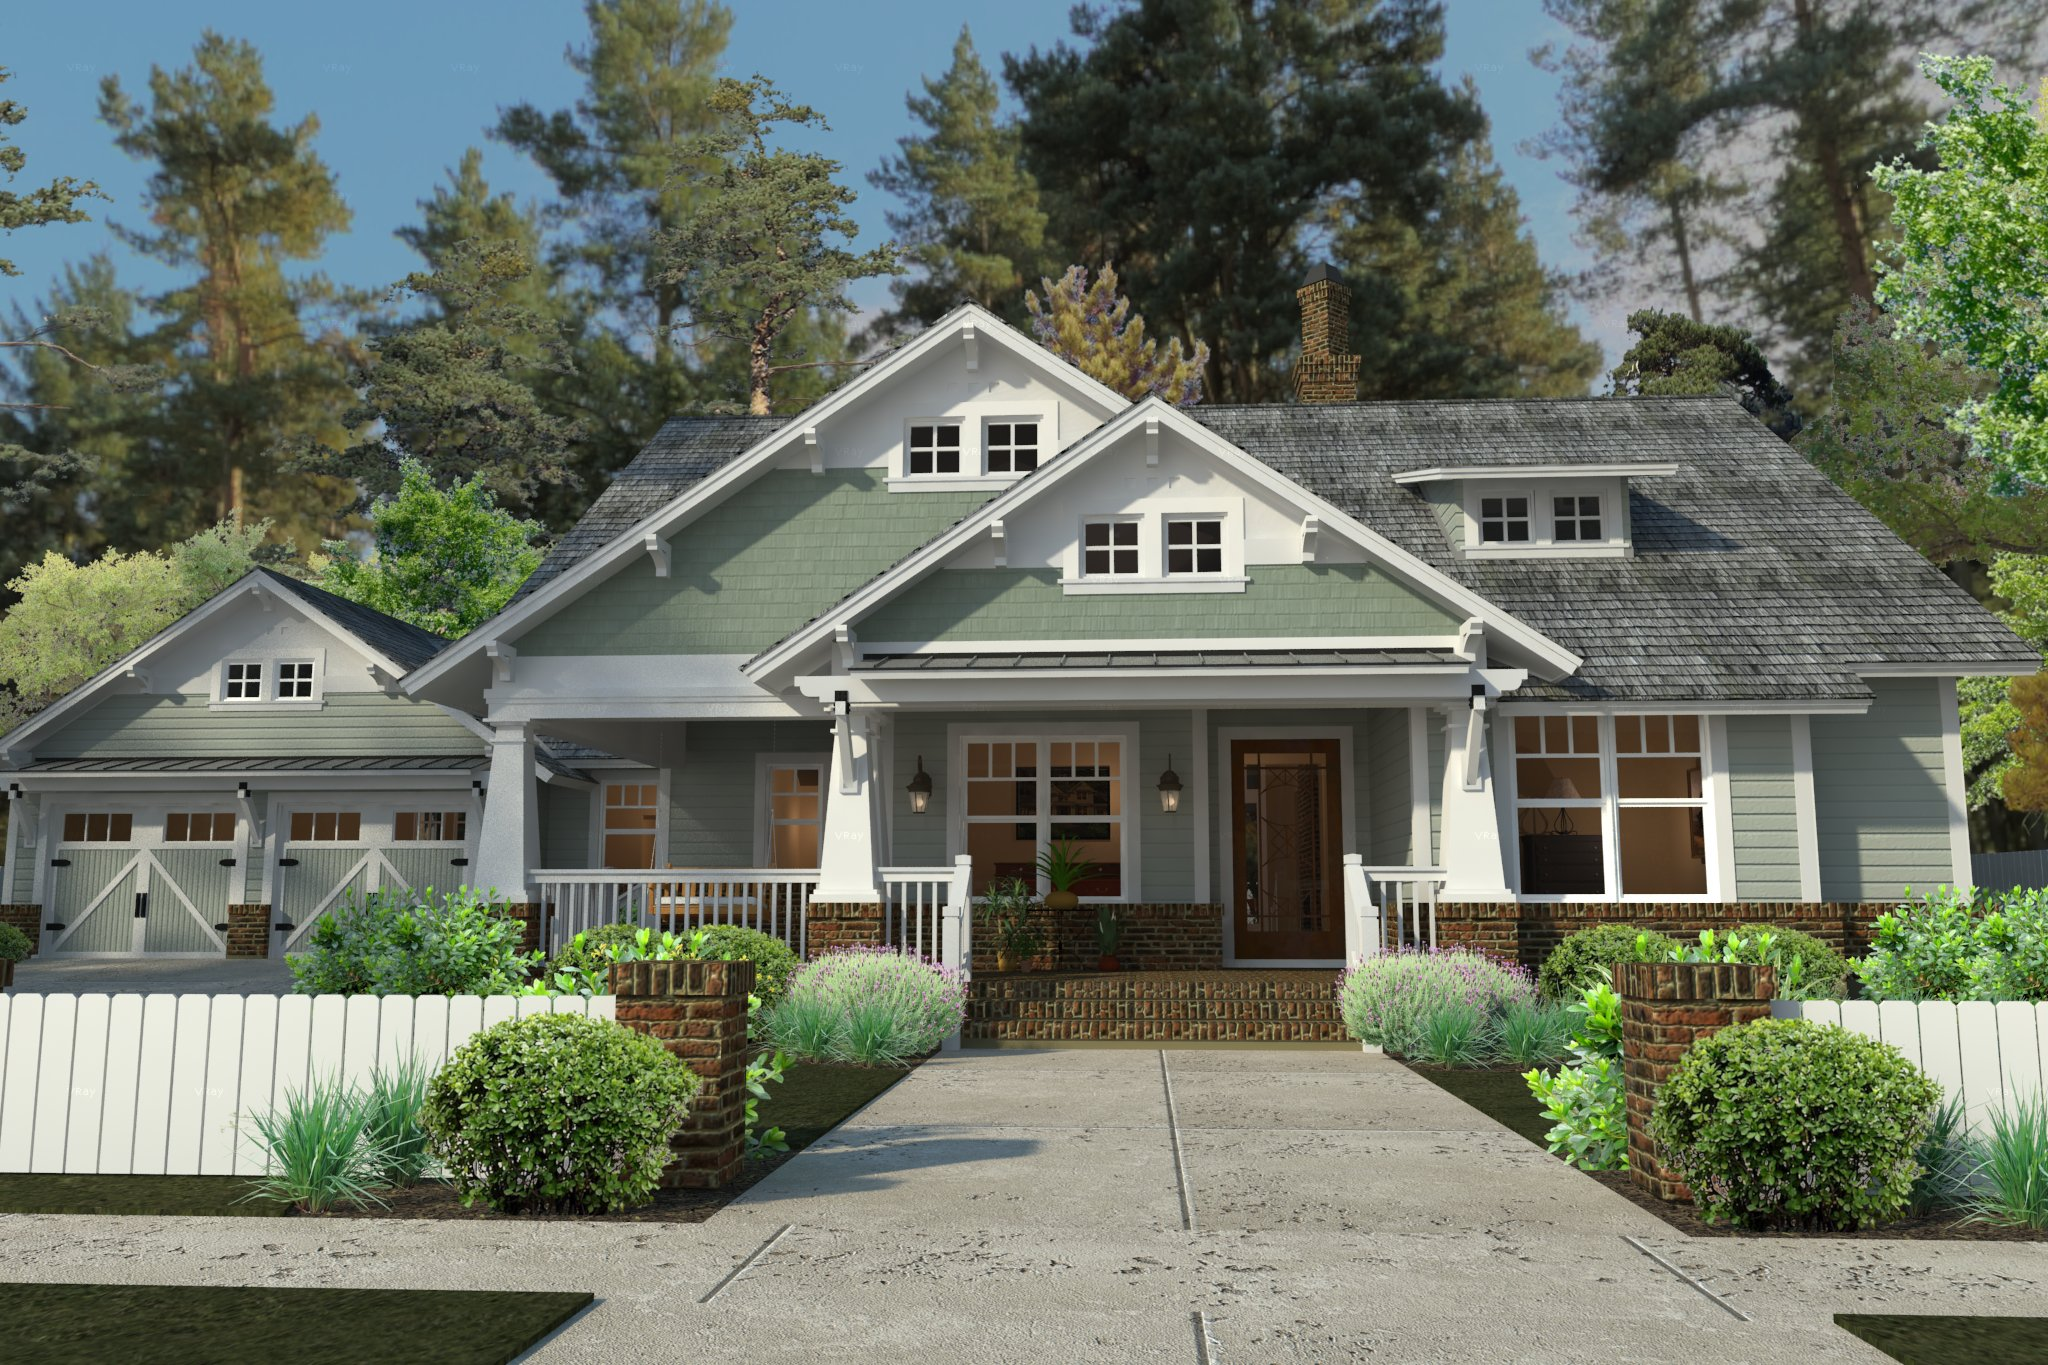 5 tips for achieving great curb appeal the house designers for Best craftsman house plans